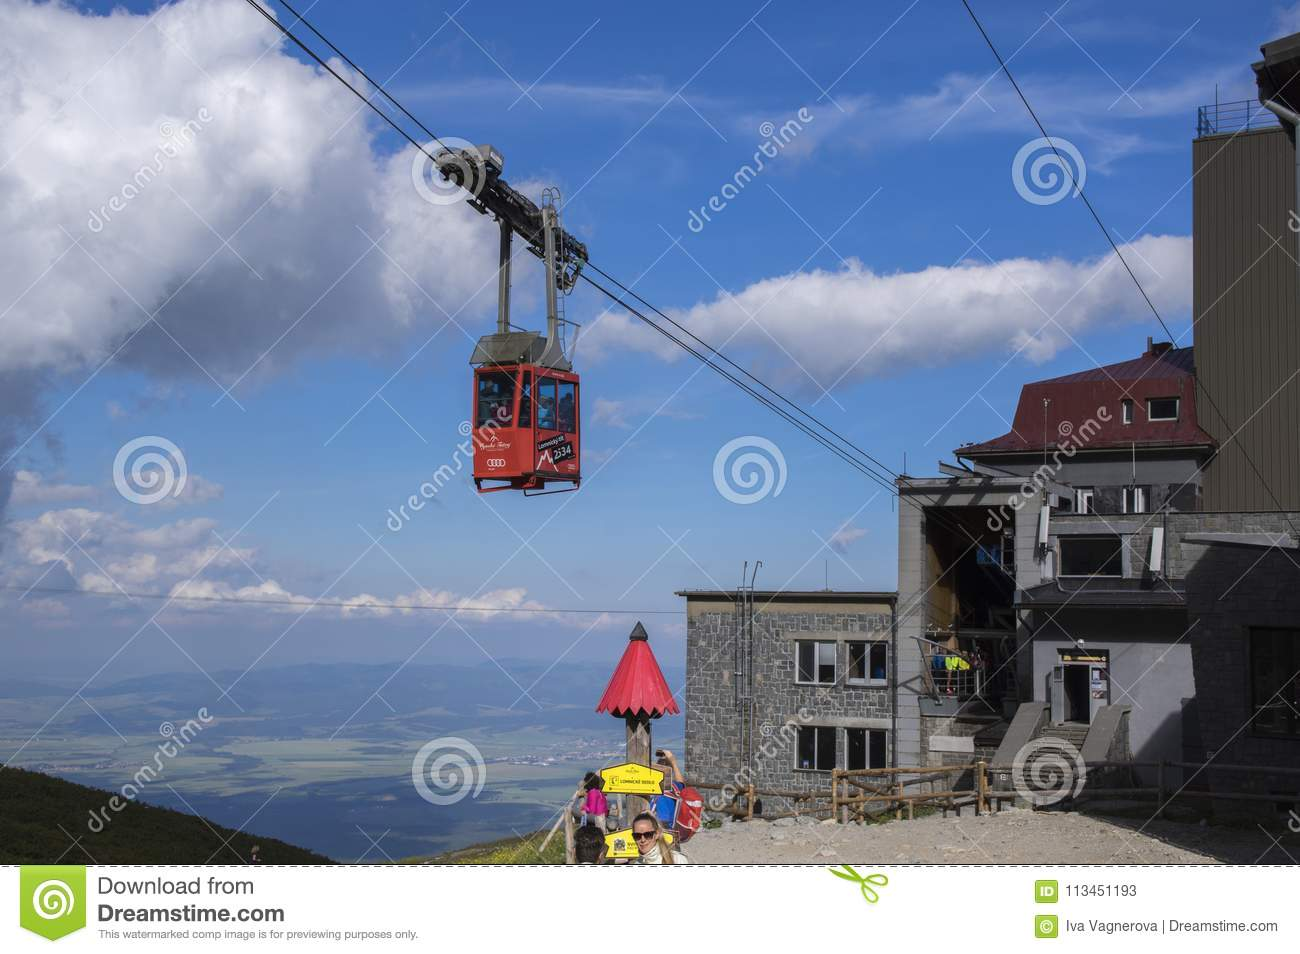 Lomnicky stit, High Tatra mountains / SLOVAKIA - July 6, 2017: Amazing aerial lift full of tourists from station Skalnate pleso to